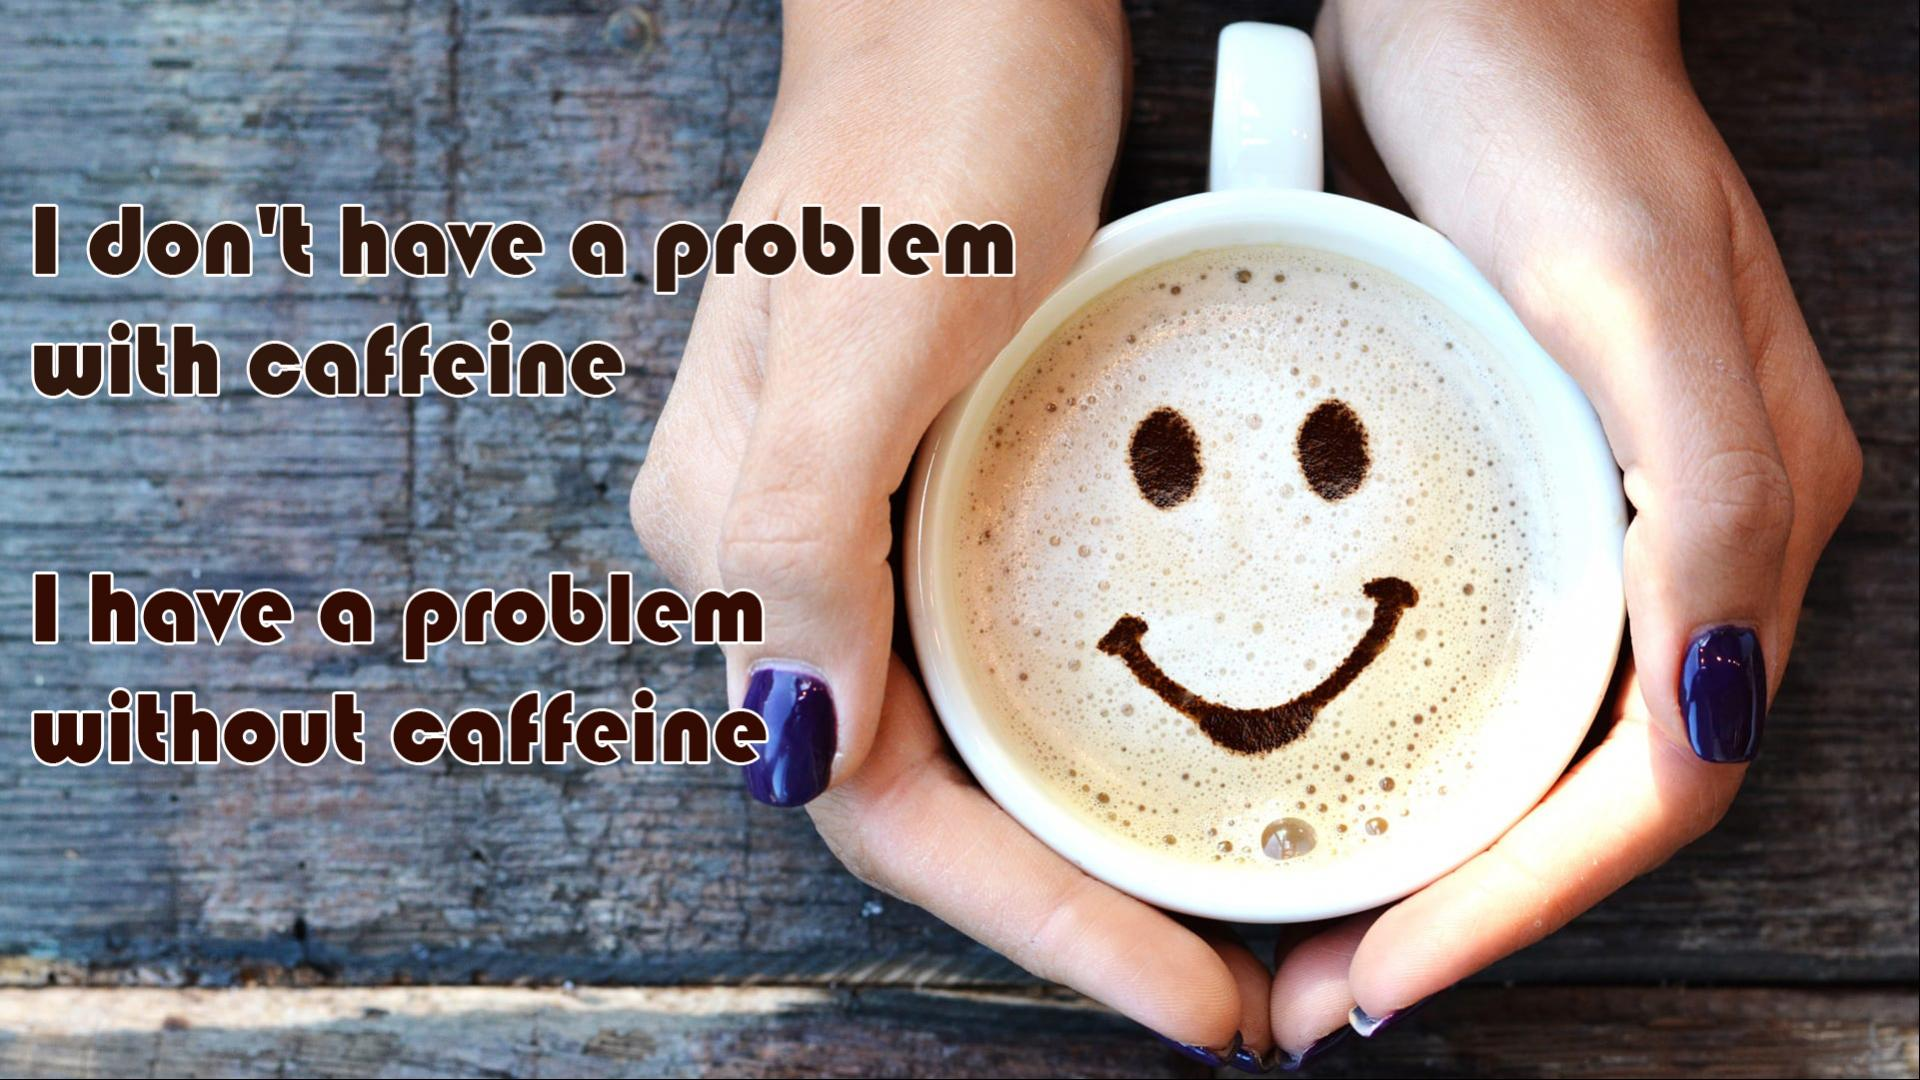 Funny Coffee Quotes Wallpaper For Desktop Background Hd Wallpapers Wallpapers Download High Resolution Wallpapers